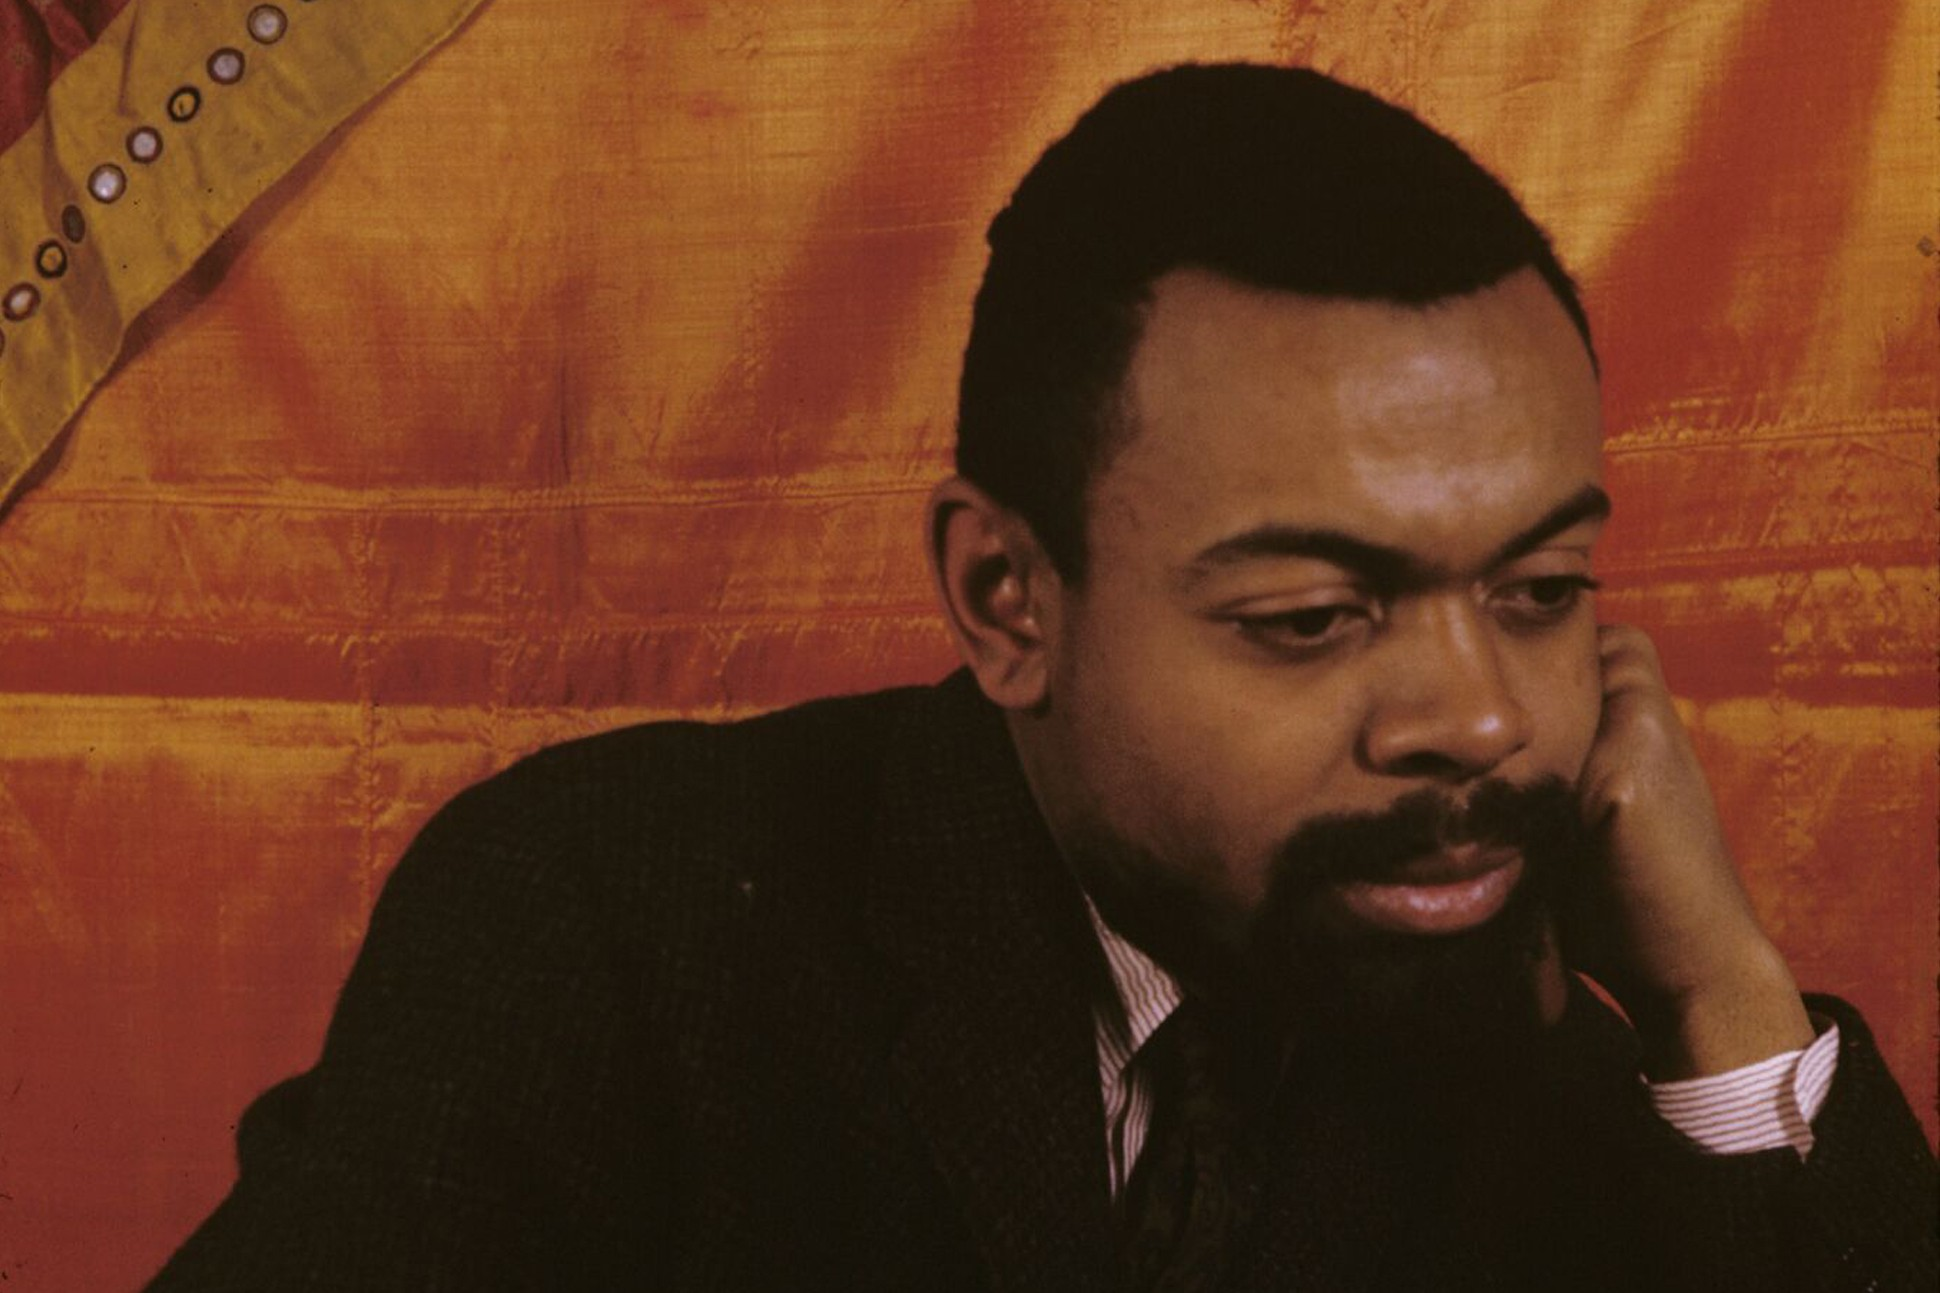 expressive language by amiri baraka poetry foundation